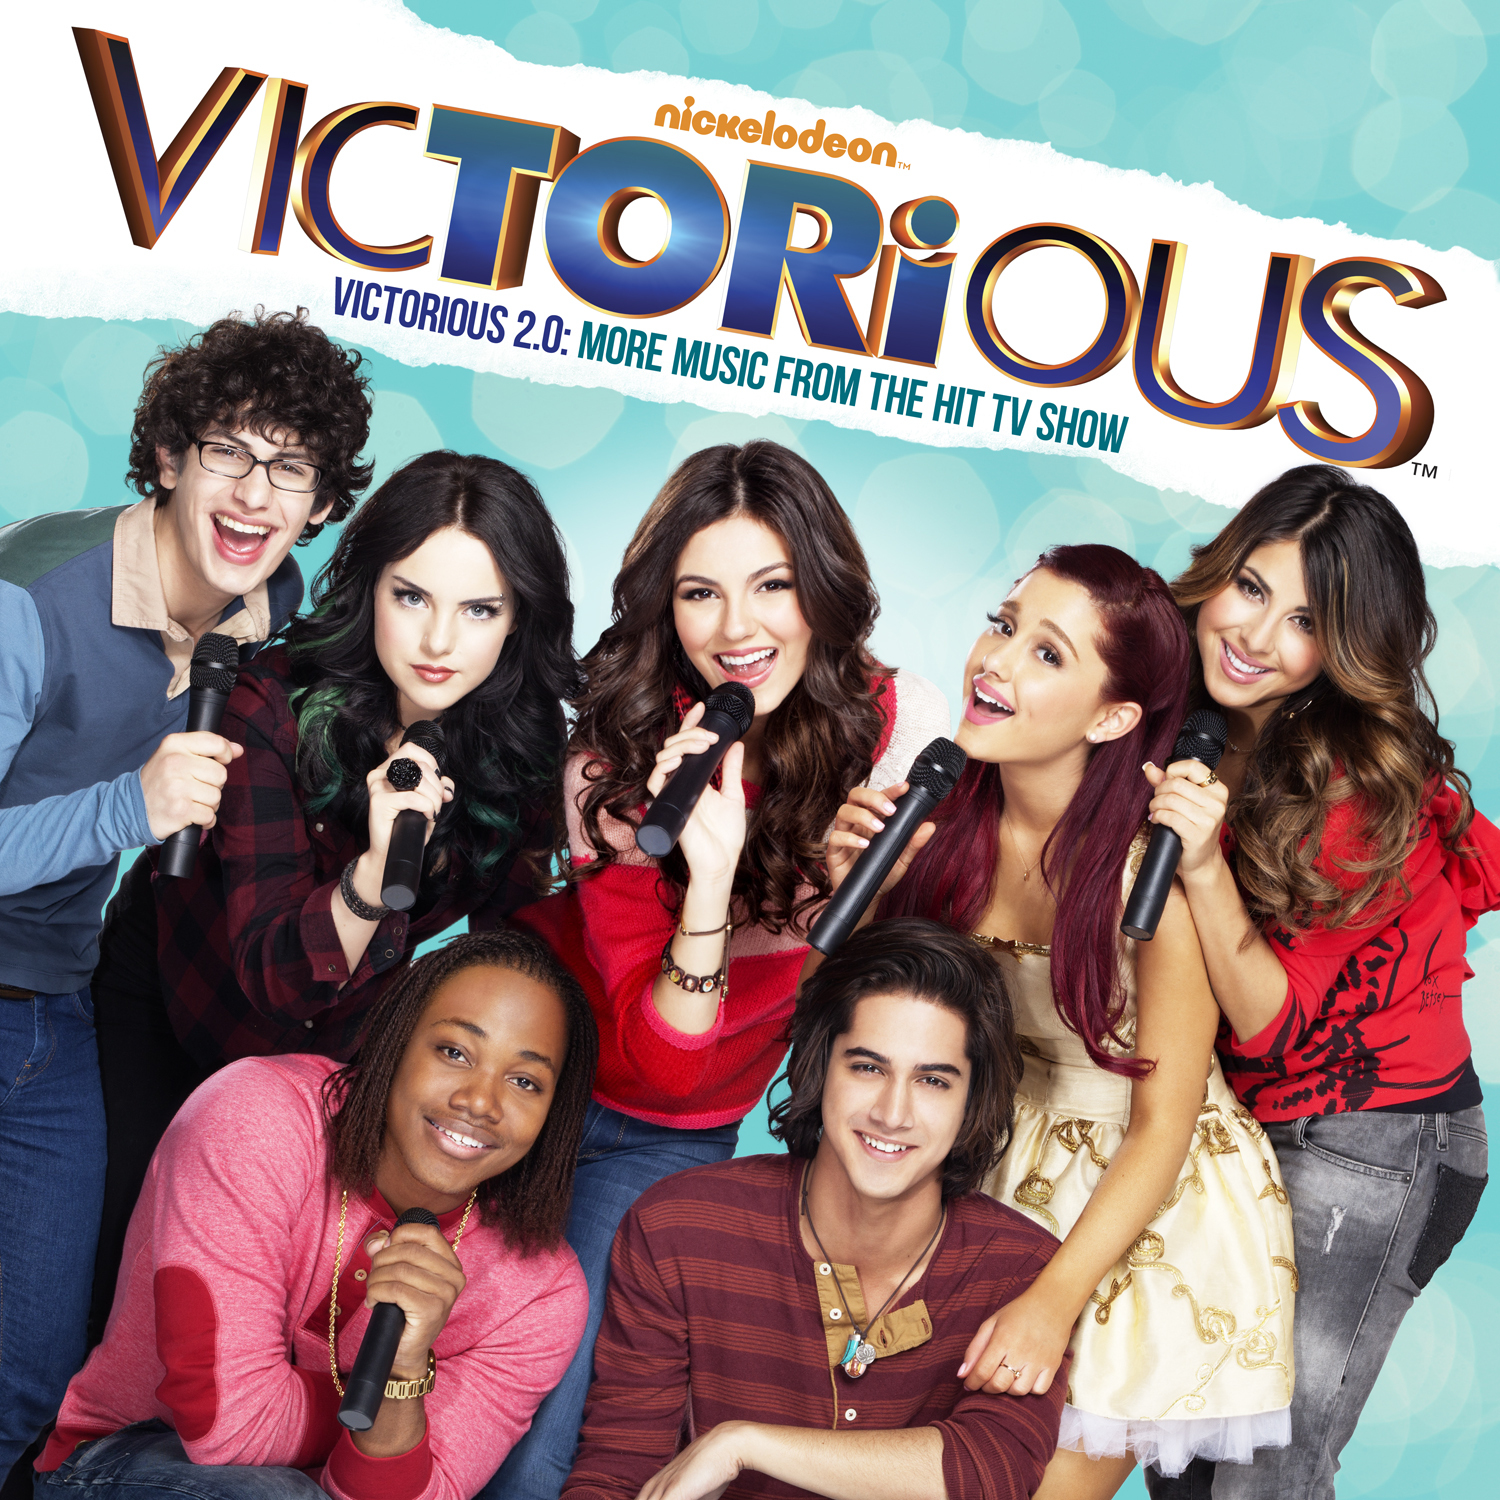 Arina Grande Thank You Mp3 Download: Victorious 2.0: More Music From The Hit